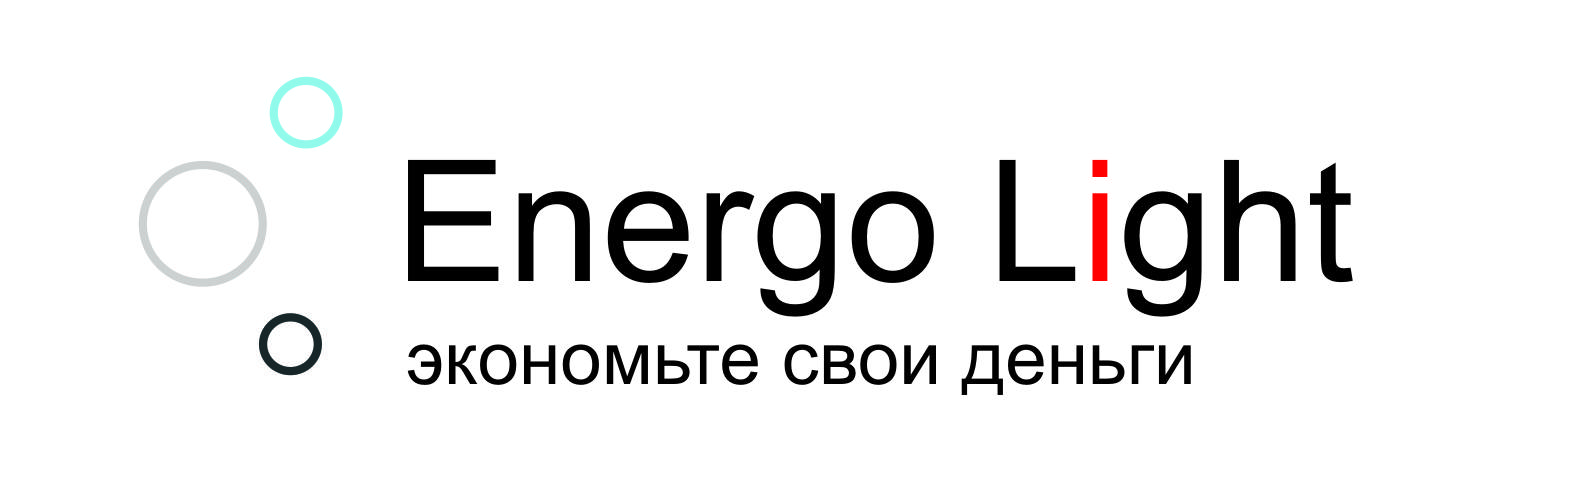 логотип Energo Light NEW.jpg